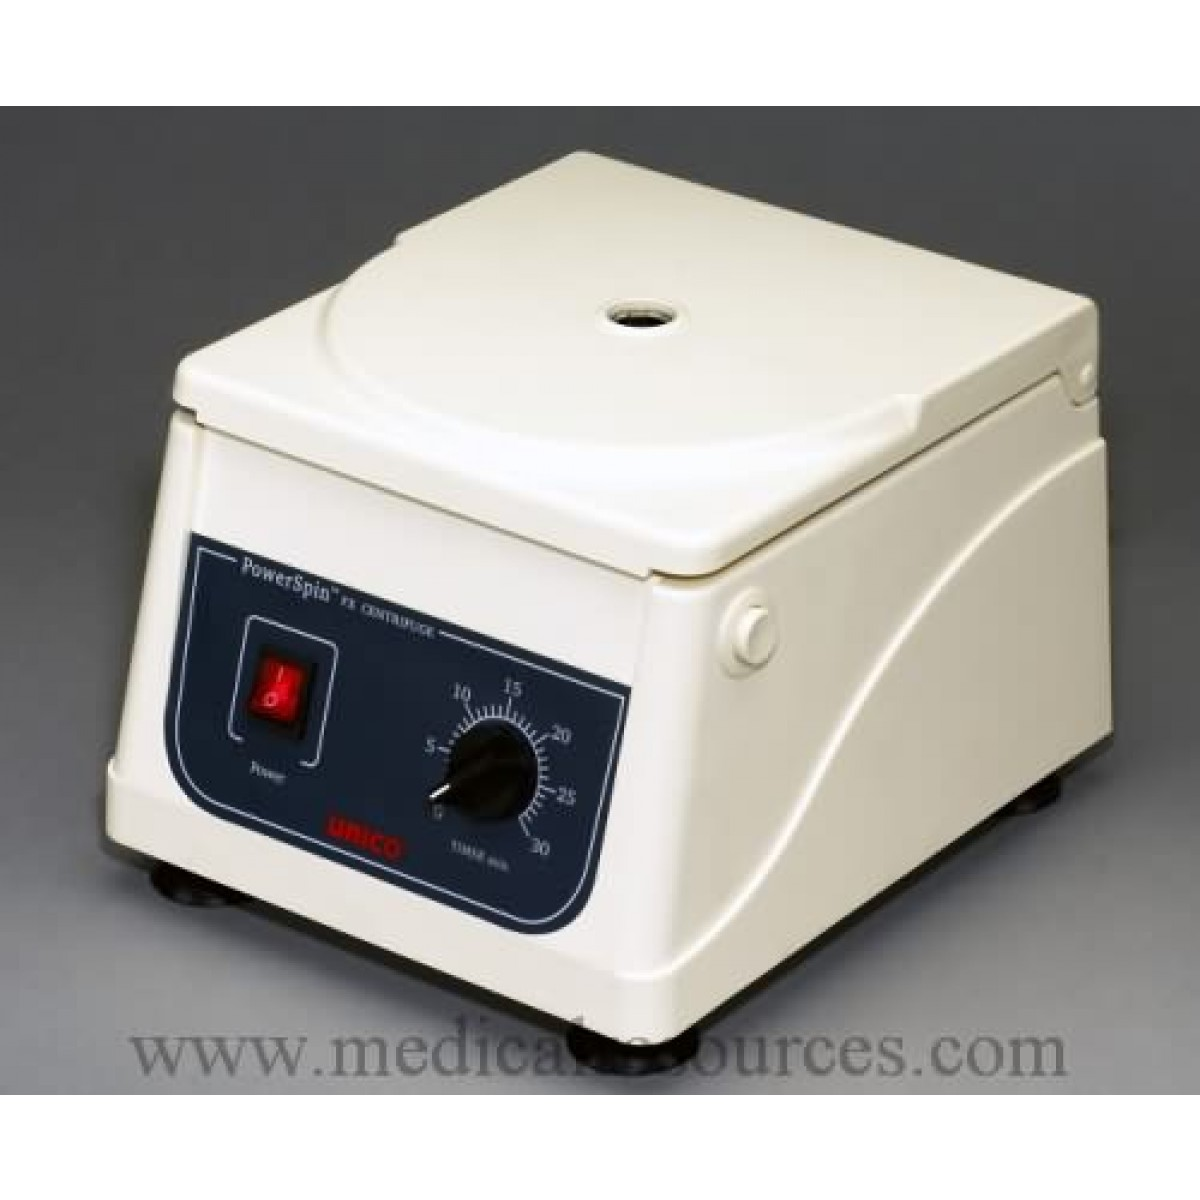 UNICO PowerSpin Centrifuges, Models FX and LX Sale Price